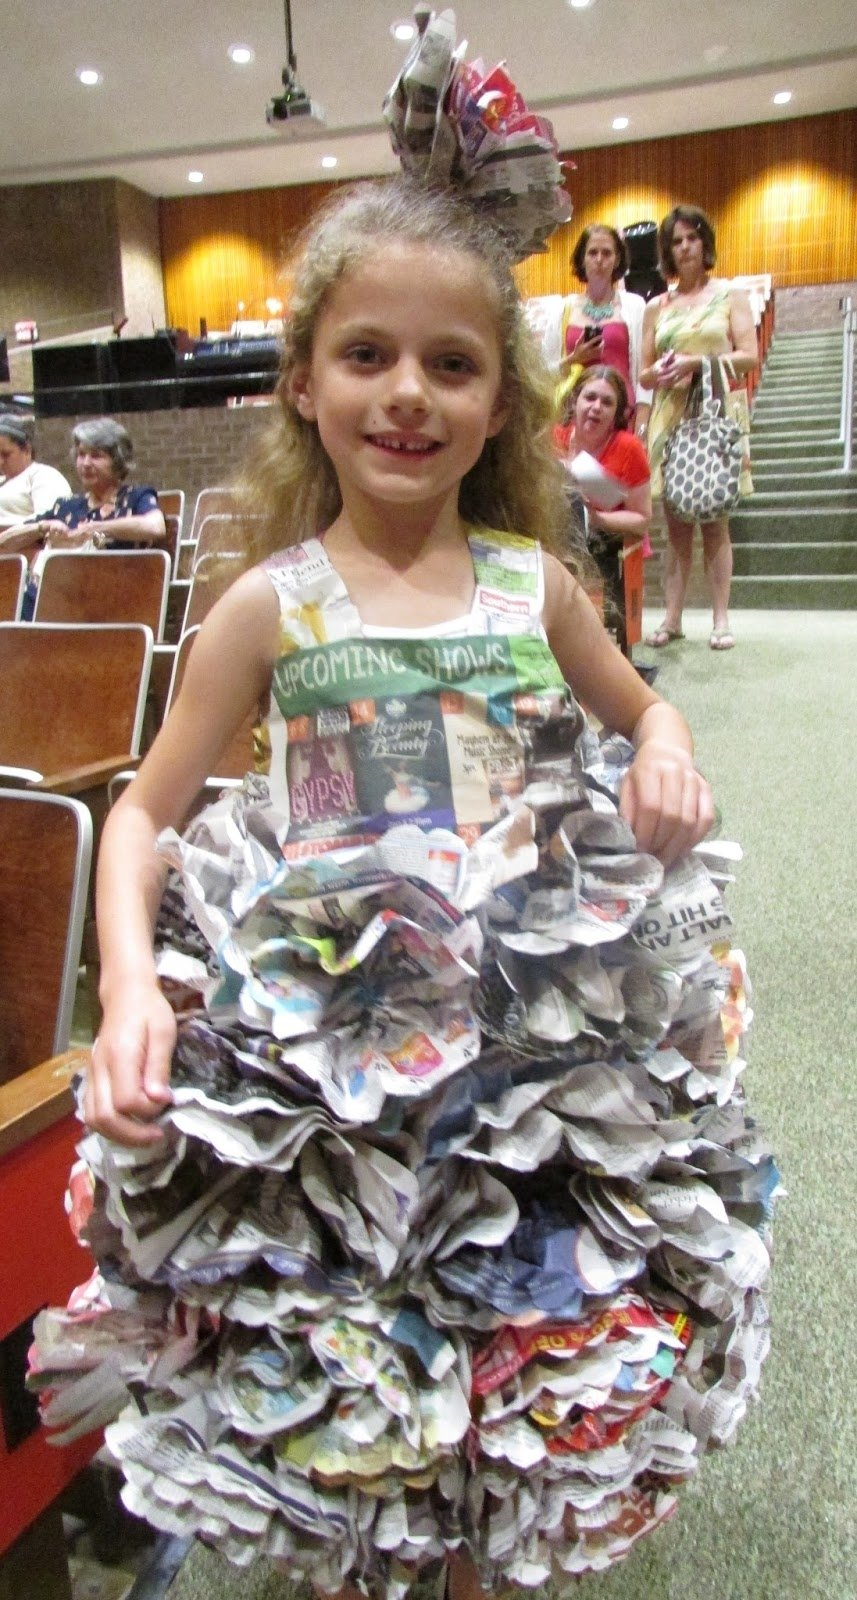 10 Fantastic Girl Scout Silver Award Ideas girl scouts of the colonial coast blog mother daughter dinner show 1 2020